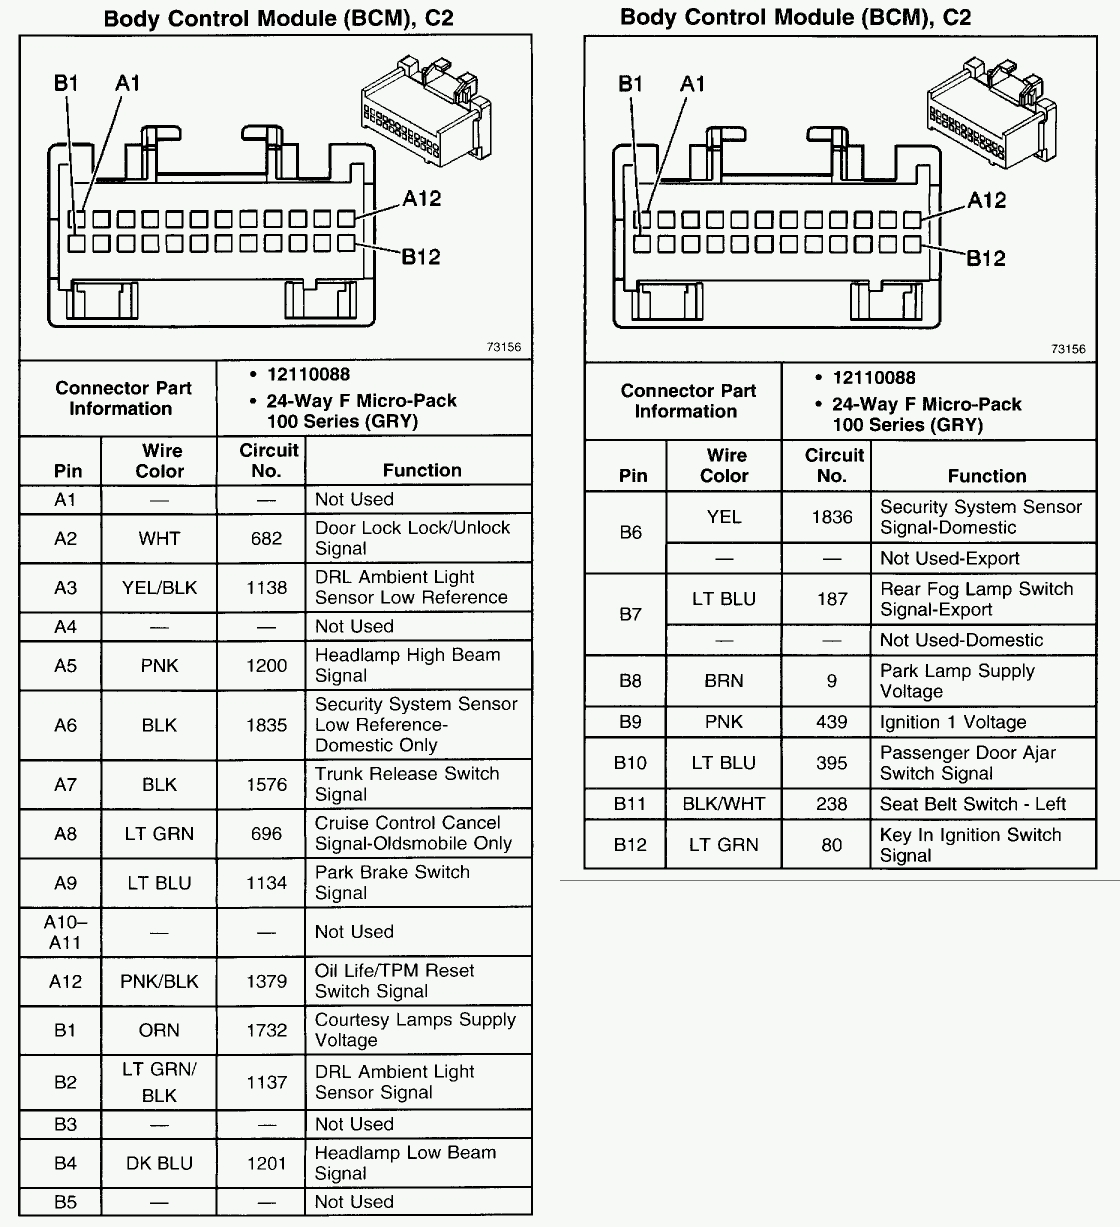 2004 Pontiac Grand Prix Parts Diagram Automotive Parts